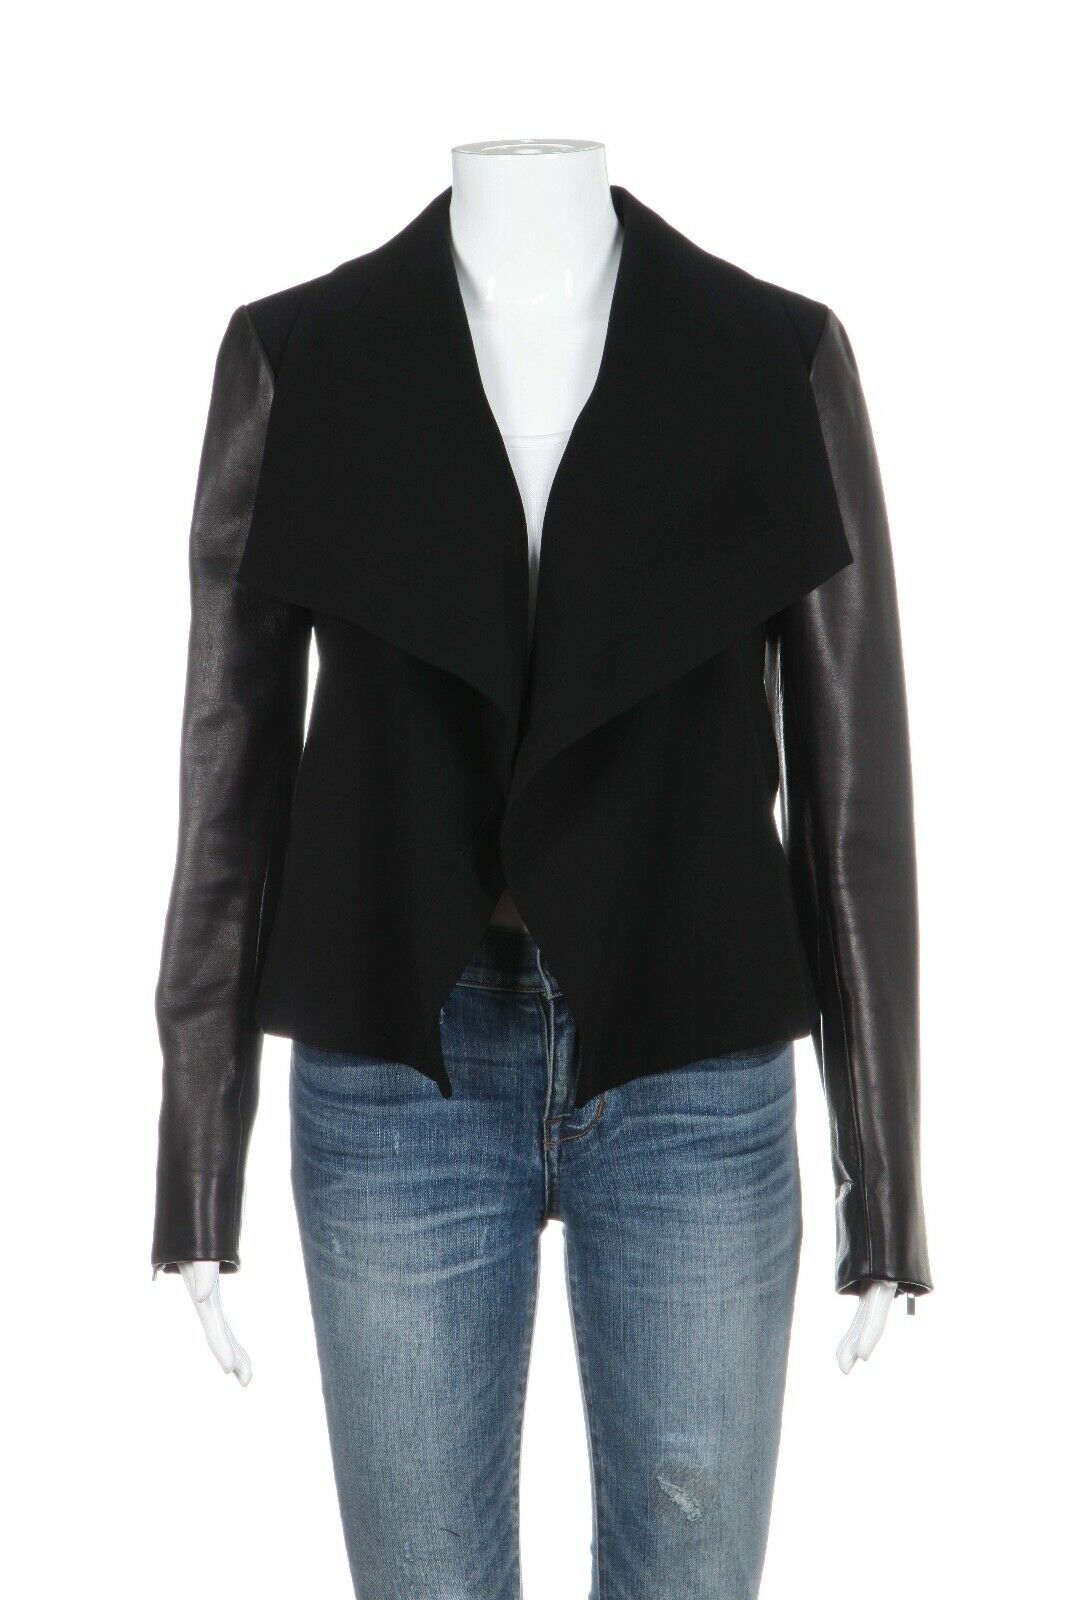 DIANE VON FURSTENBERG Leather Sleeve Open Jacket Size 2